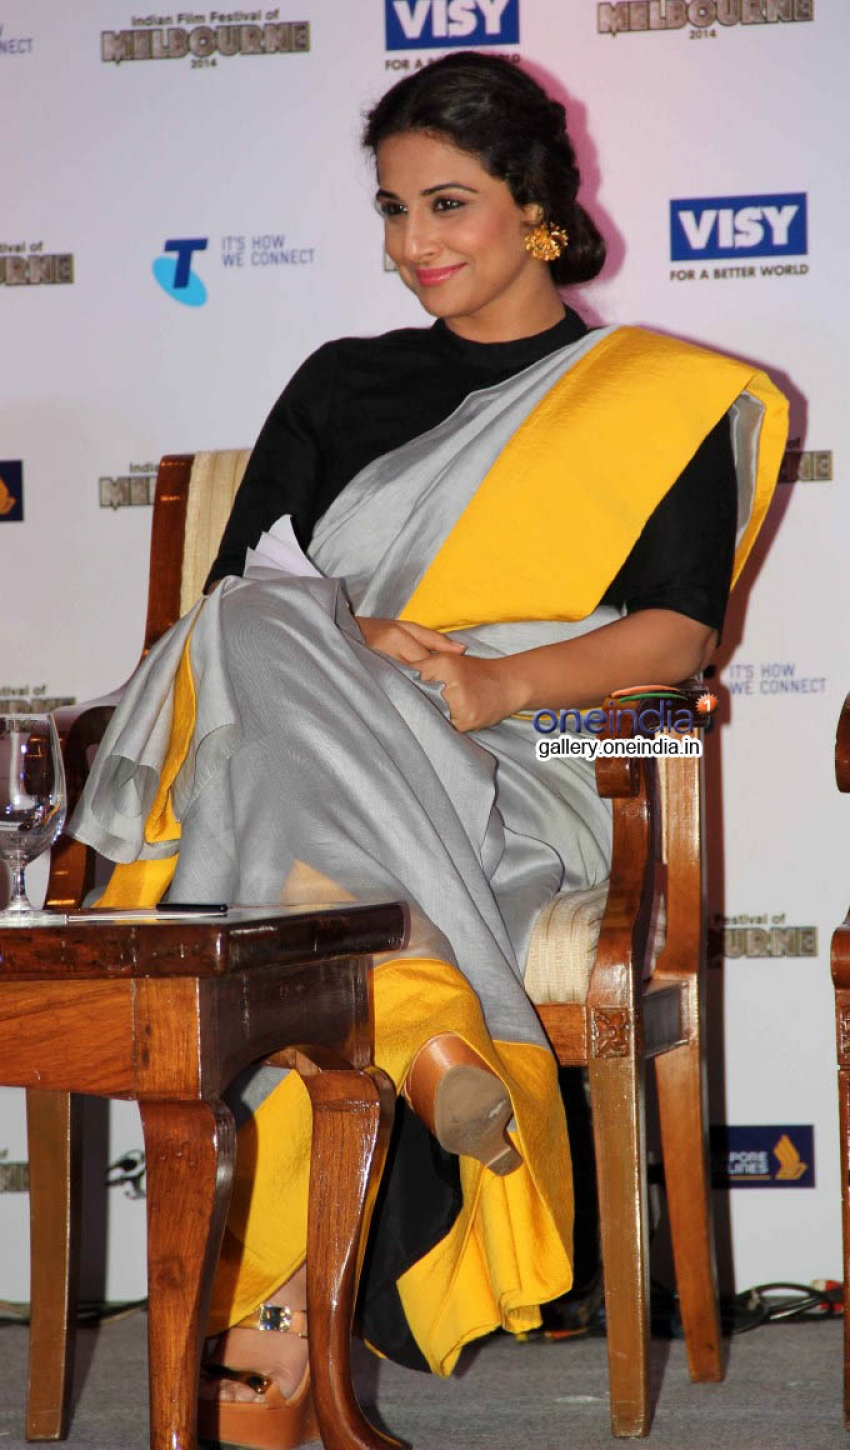 Vidya Balan at press conference of Indian Film Festival of Melbourne Photos